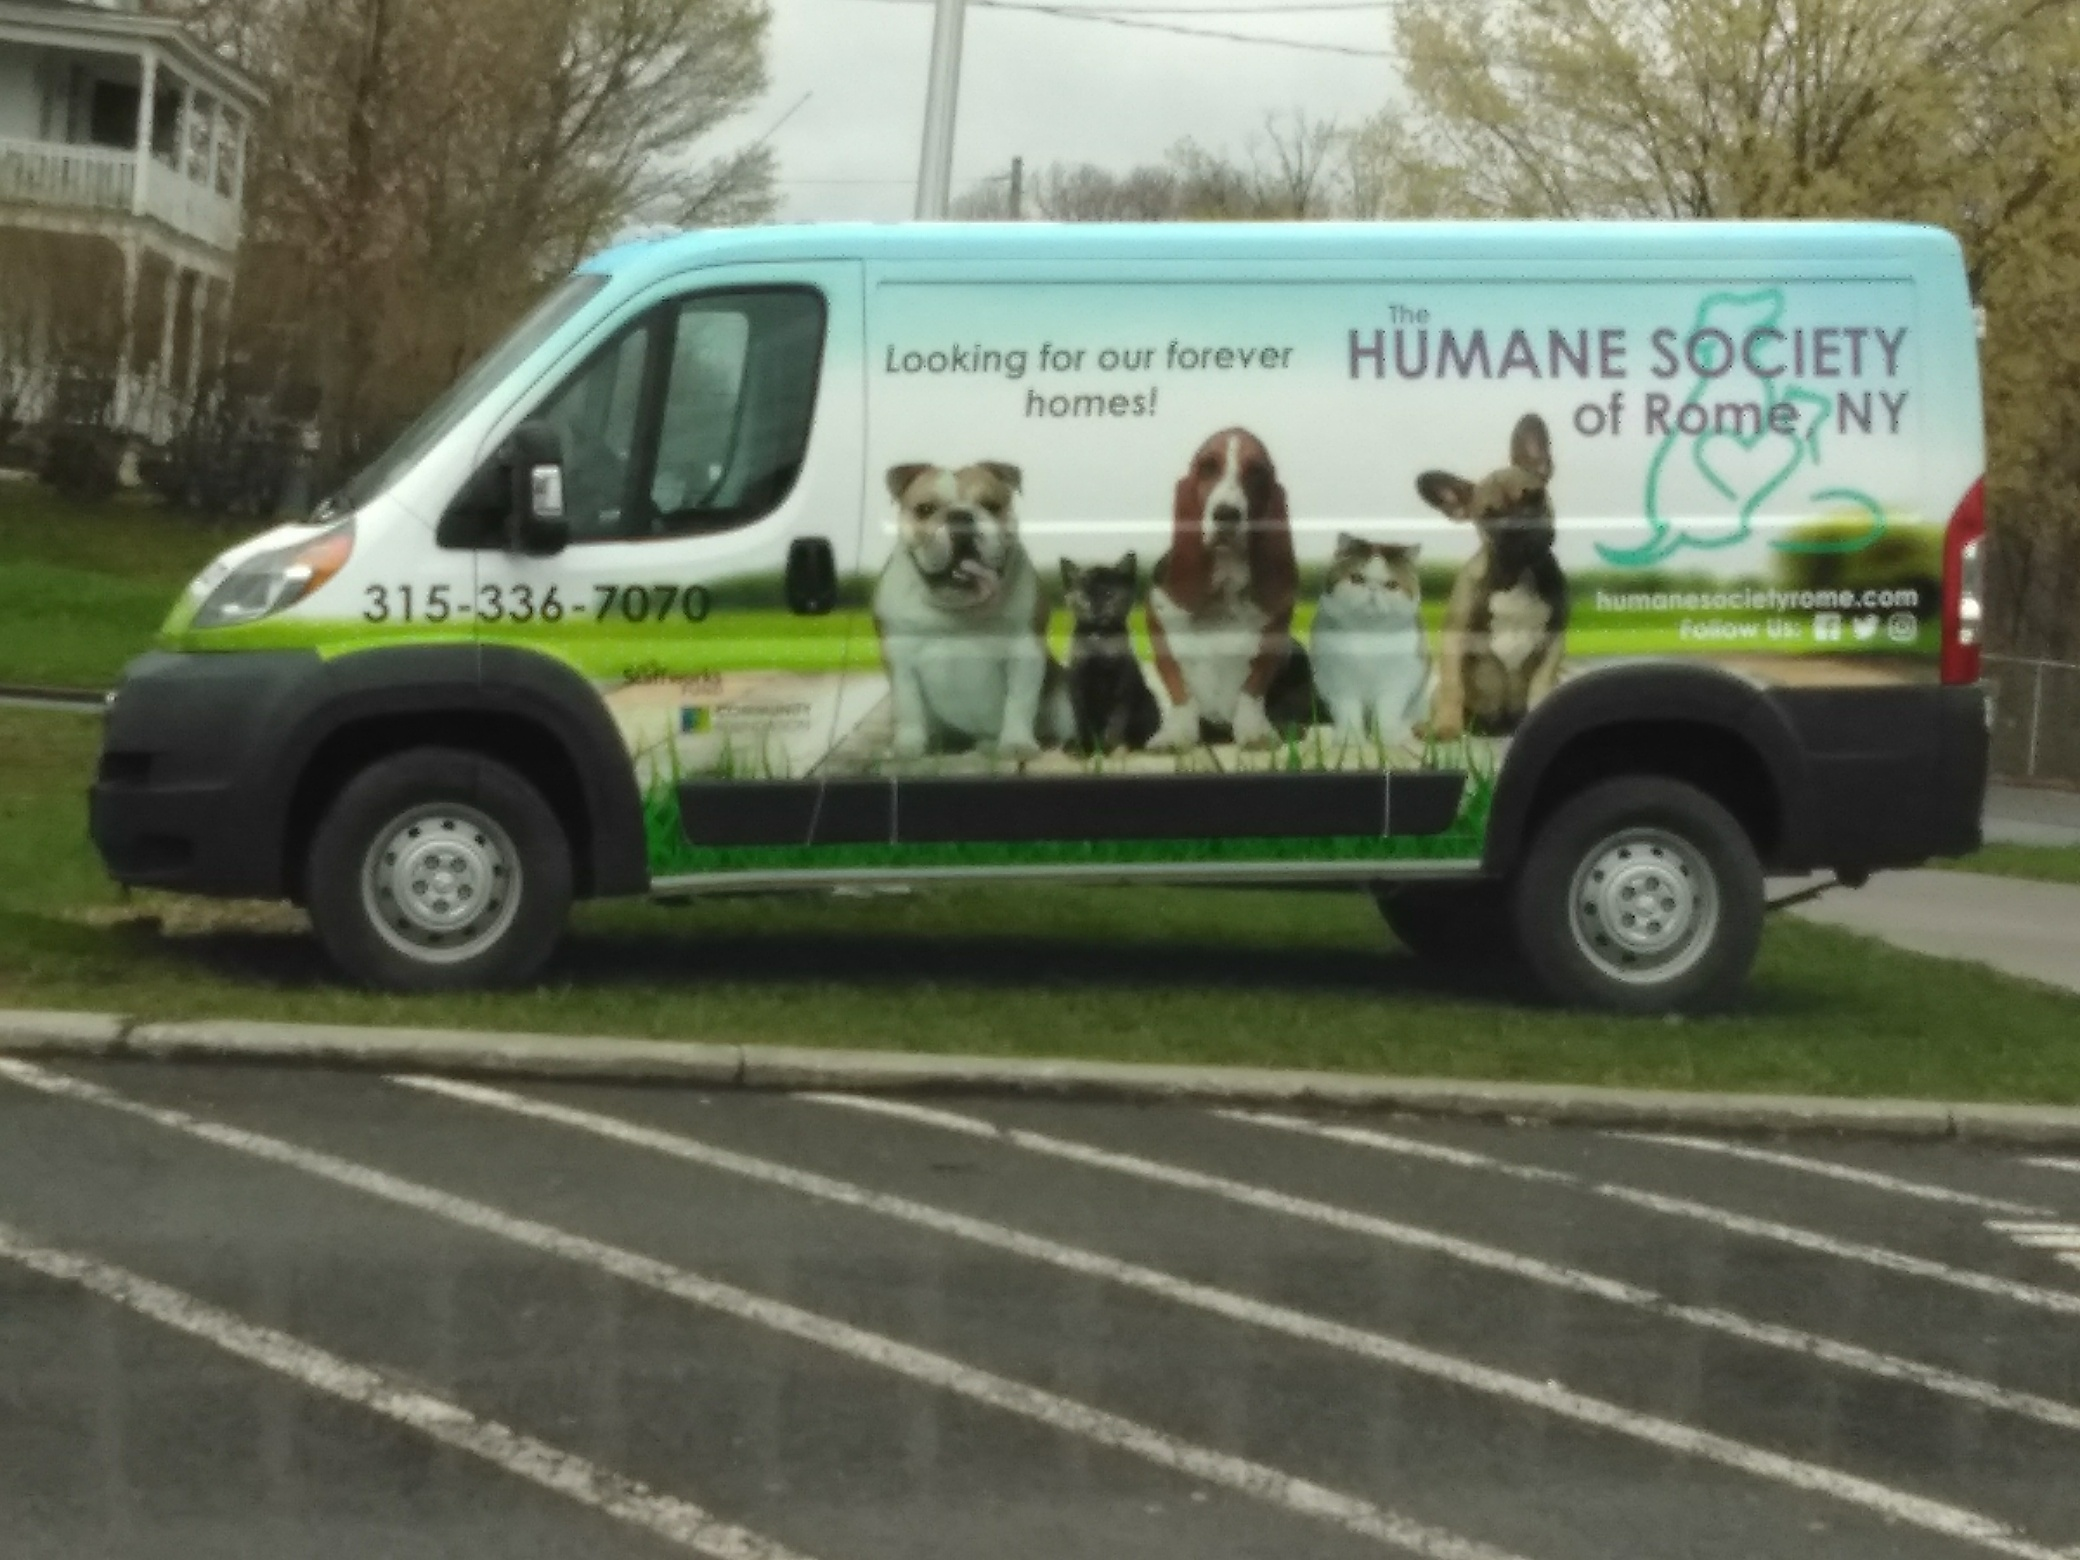 Humane Society of Rome – We Have a Heart!